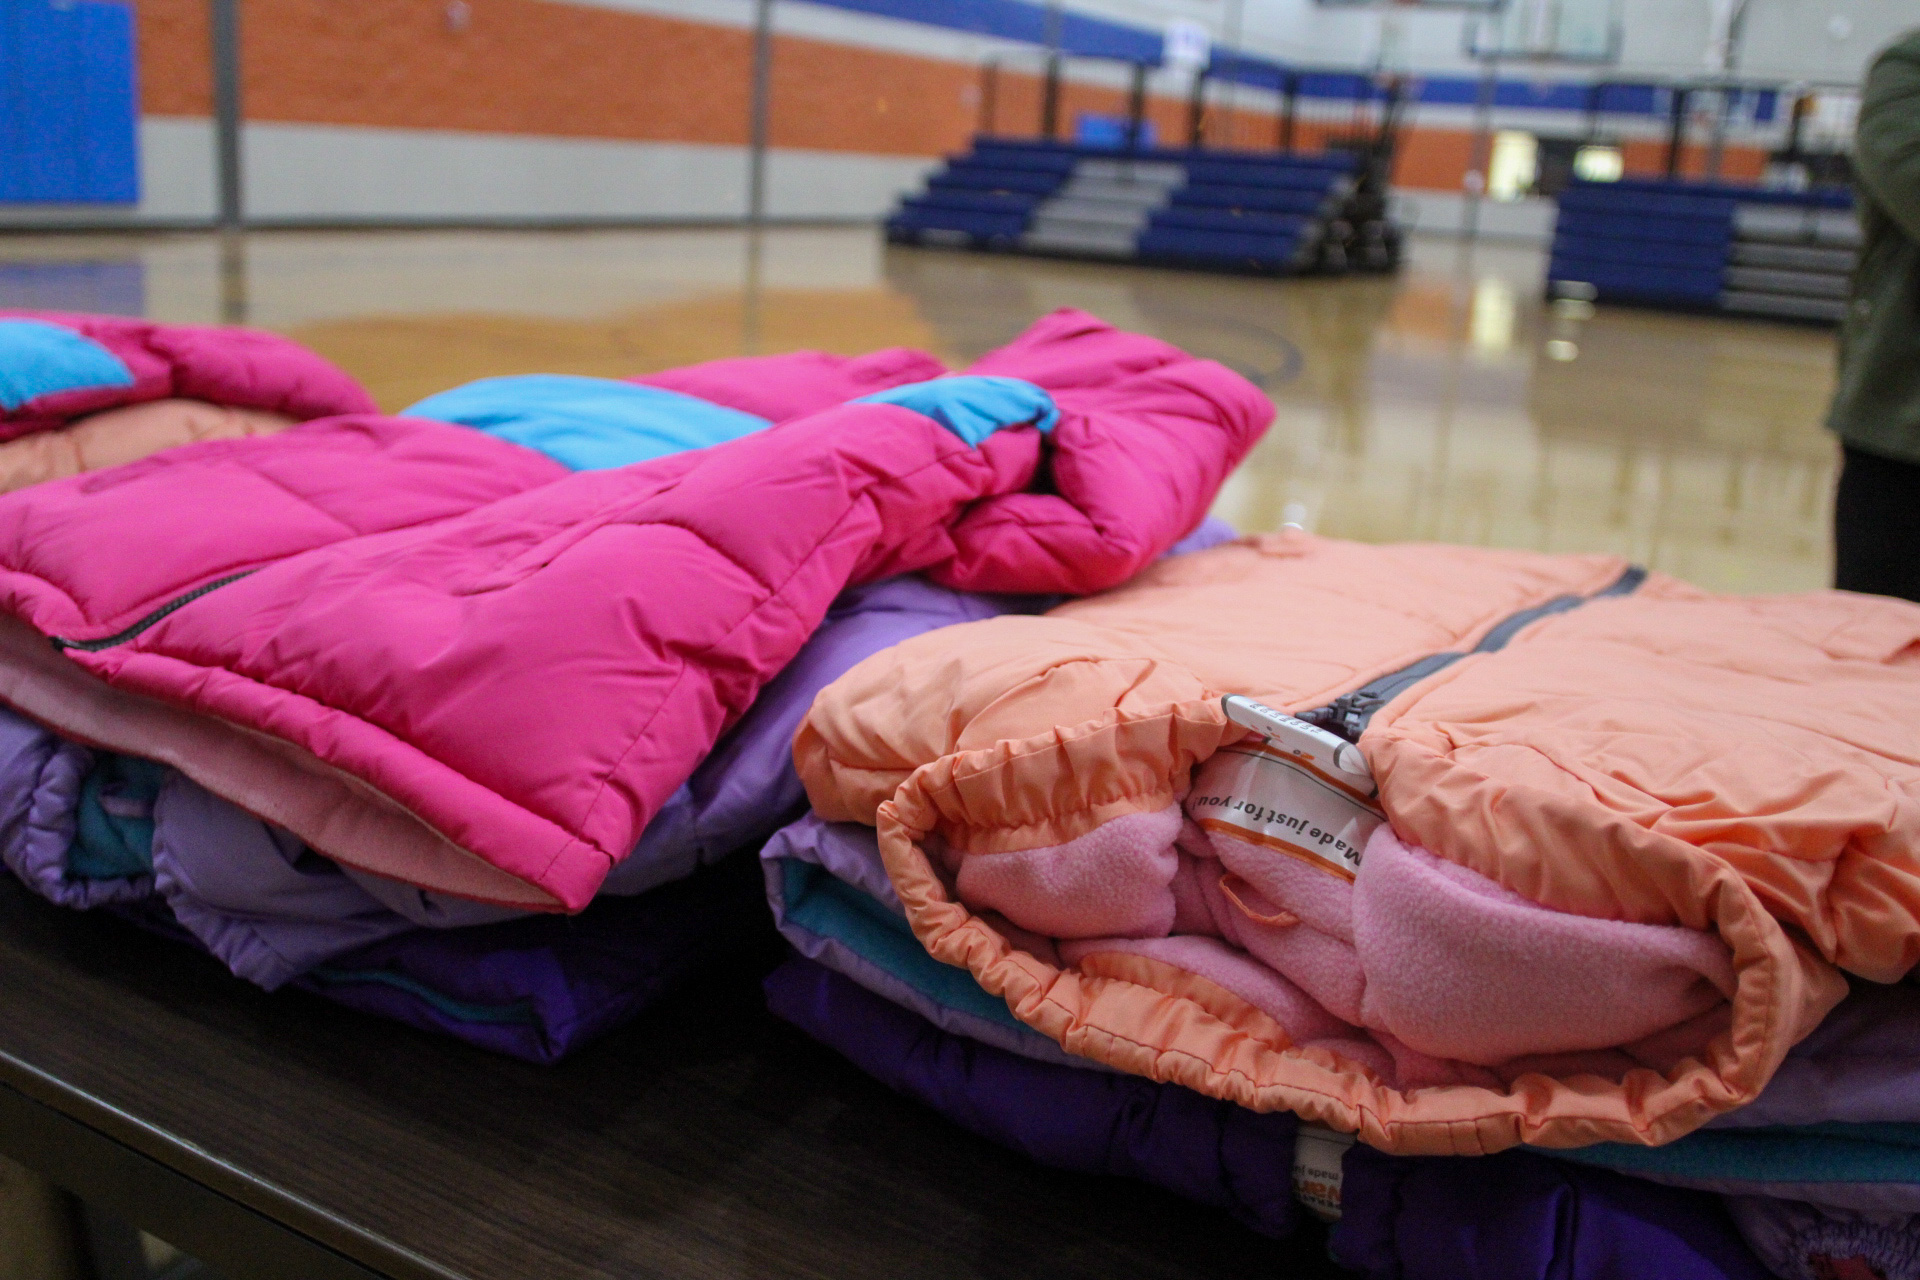 More than 300 youth at MAM received brand new coats